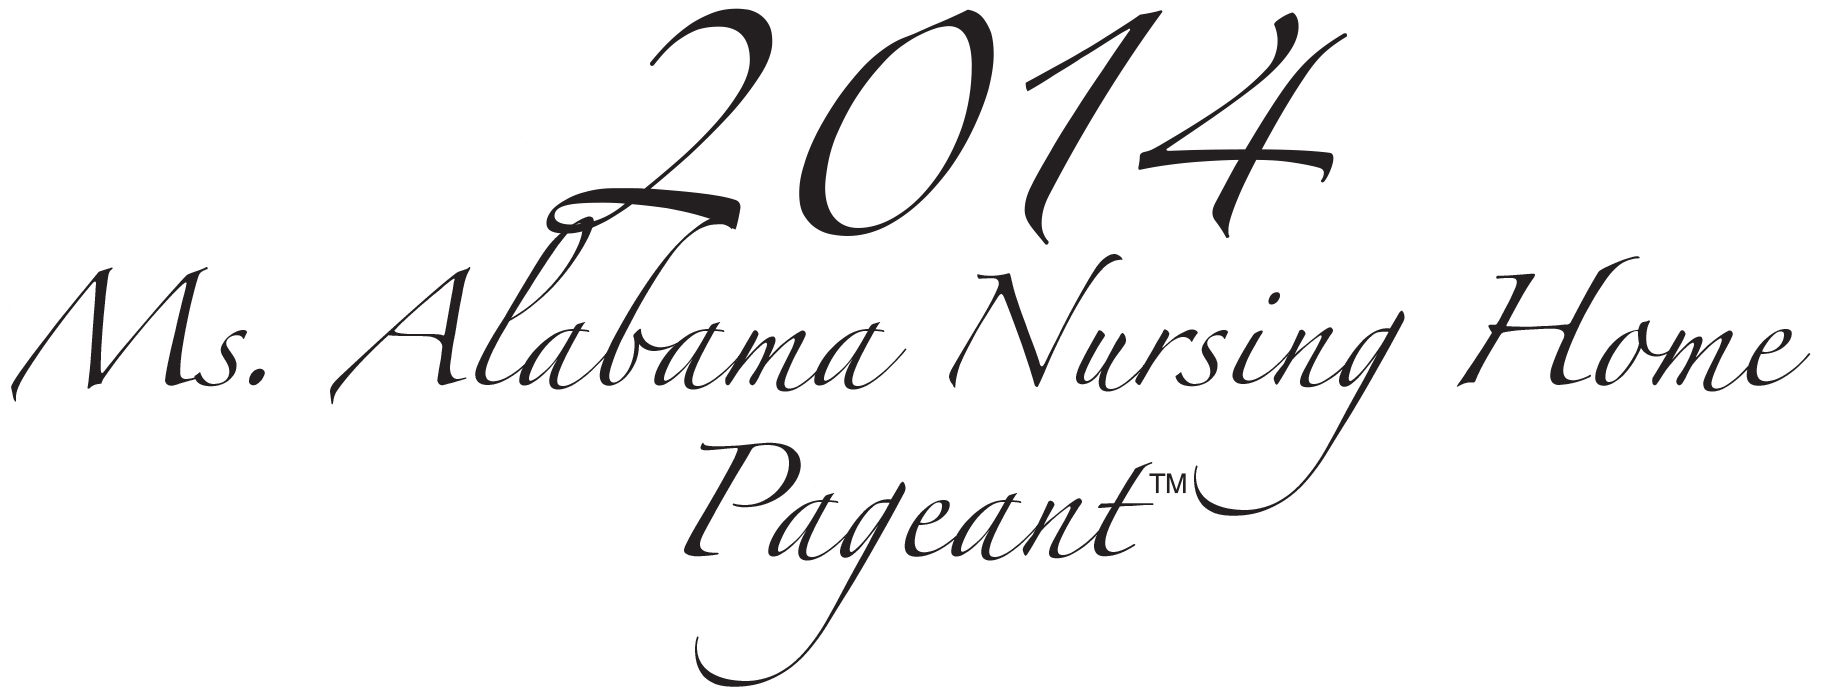 Top 10 Finalists for Ms. Alabama Nursing Home Pageant